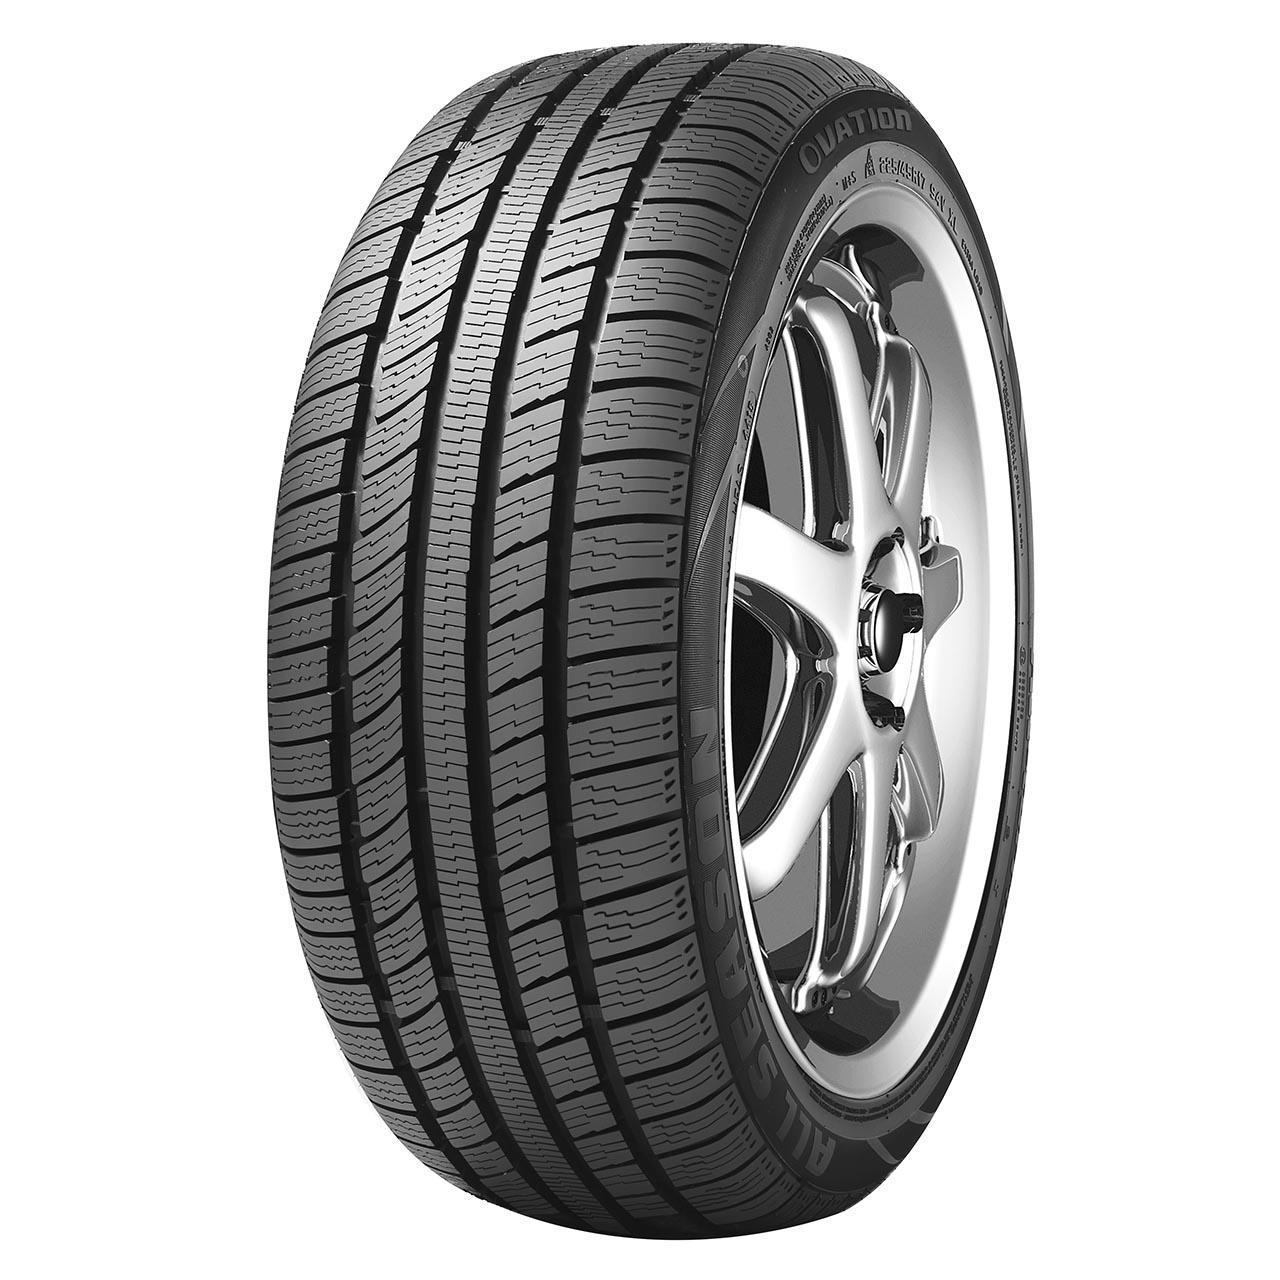 OVATION VI 782AS 175/70 R14 88T XL M+S